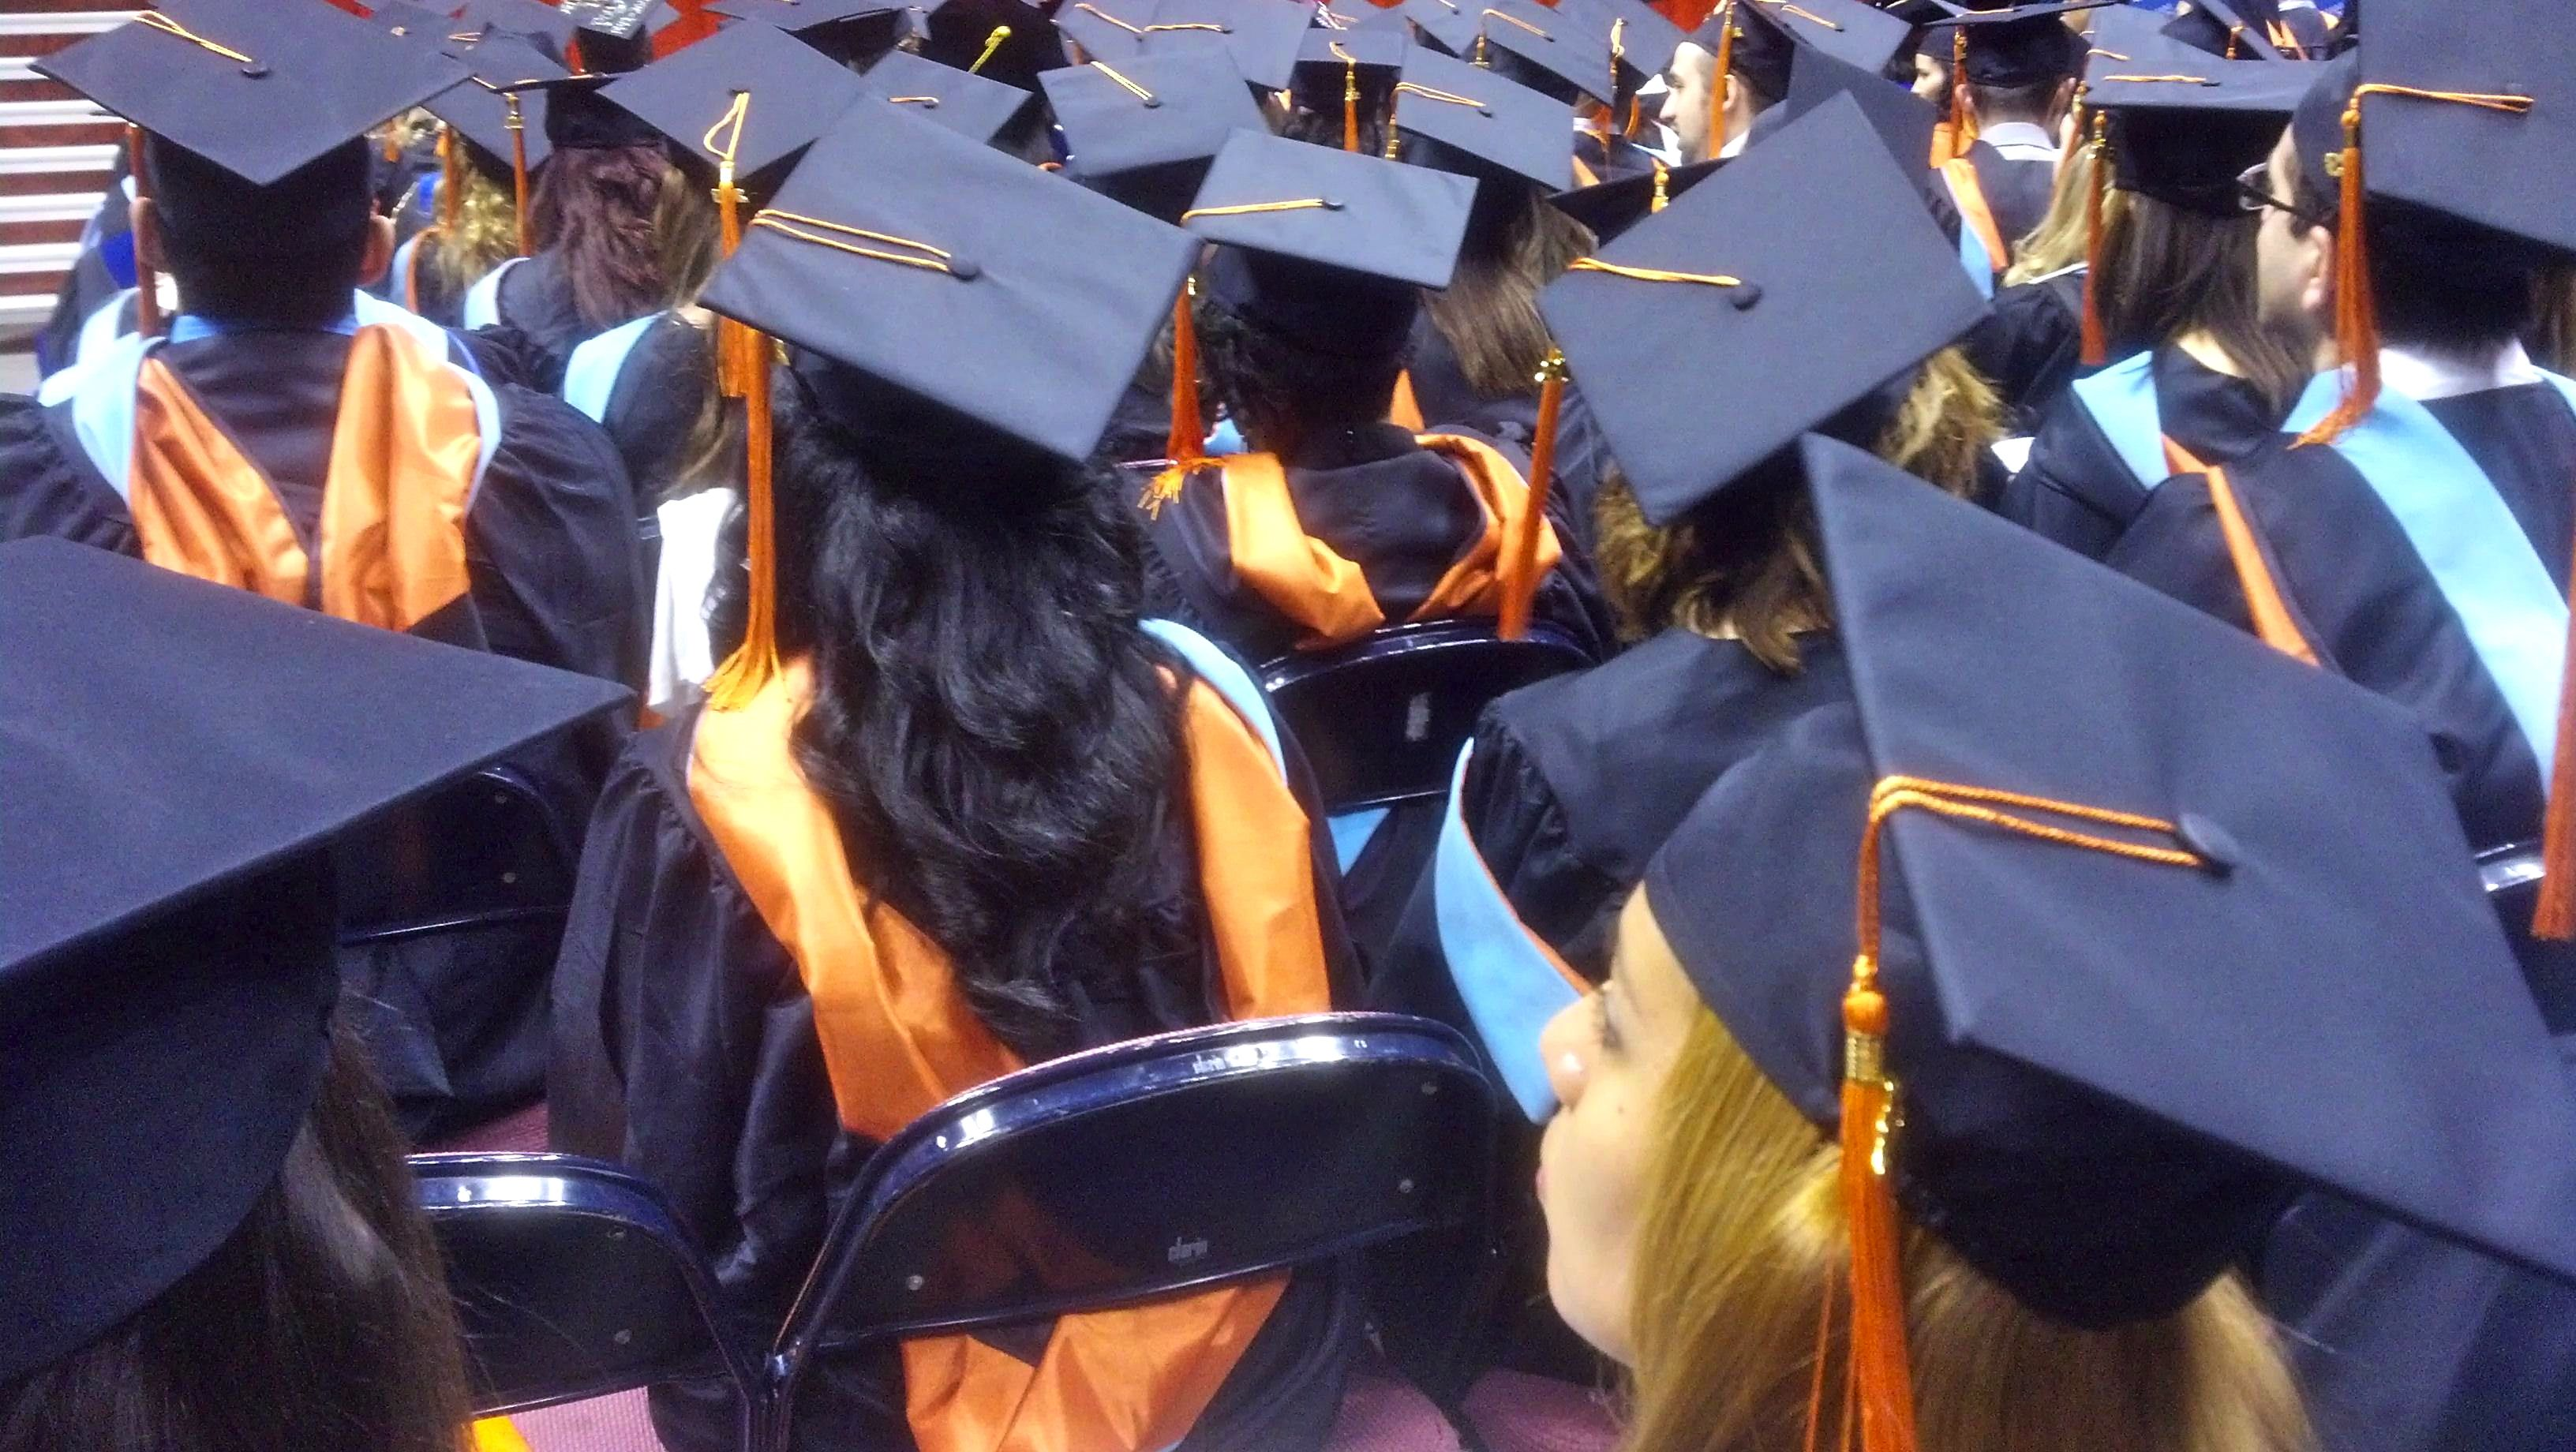 Picture from a graduation ceremony.